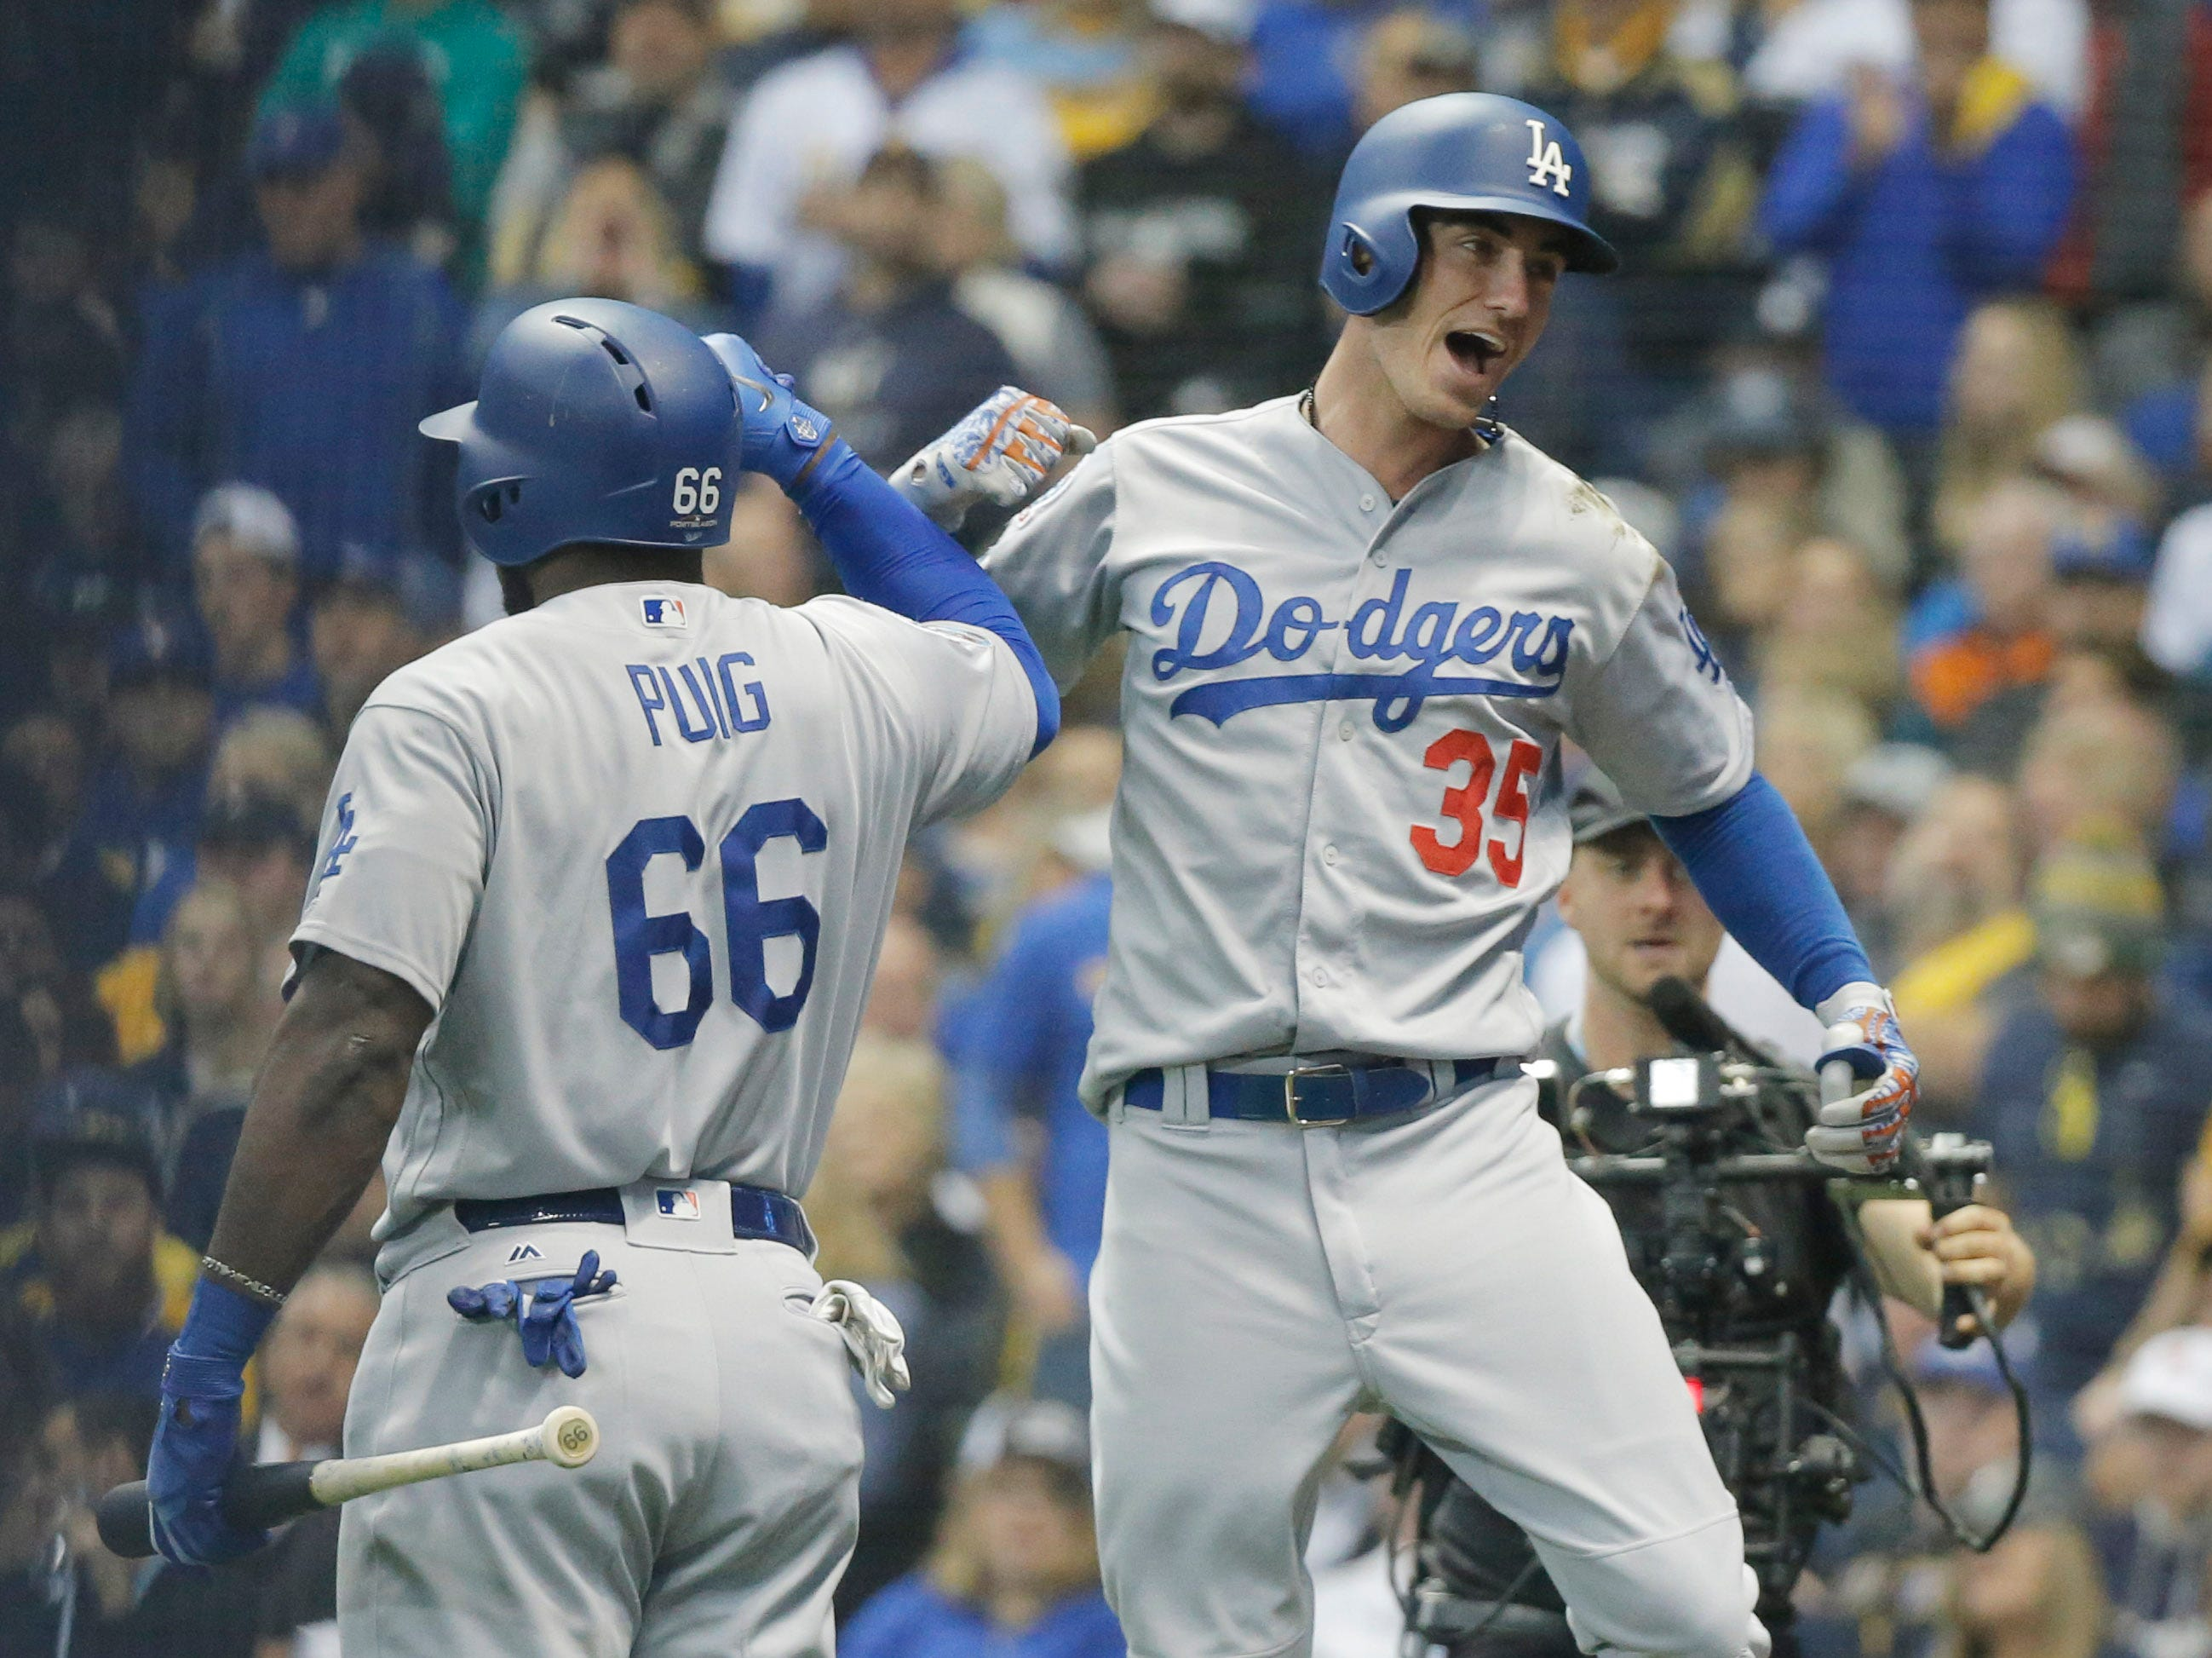 NLCS Game 7: Cody Bellinger celebrates his home run in the second inning with Yasiel Puig.